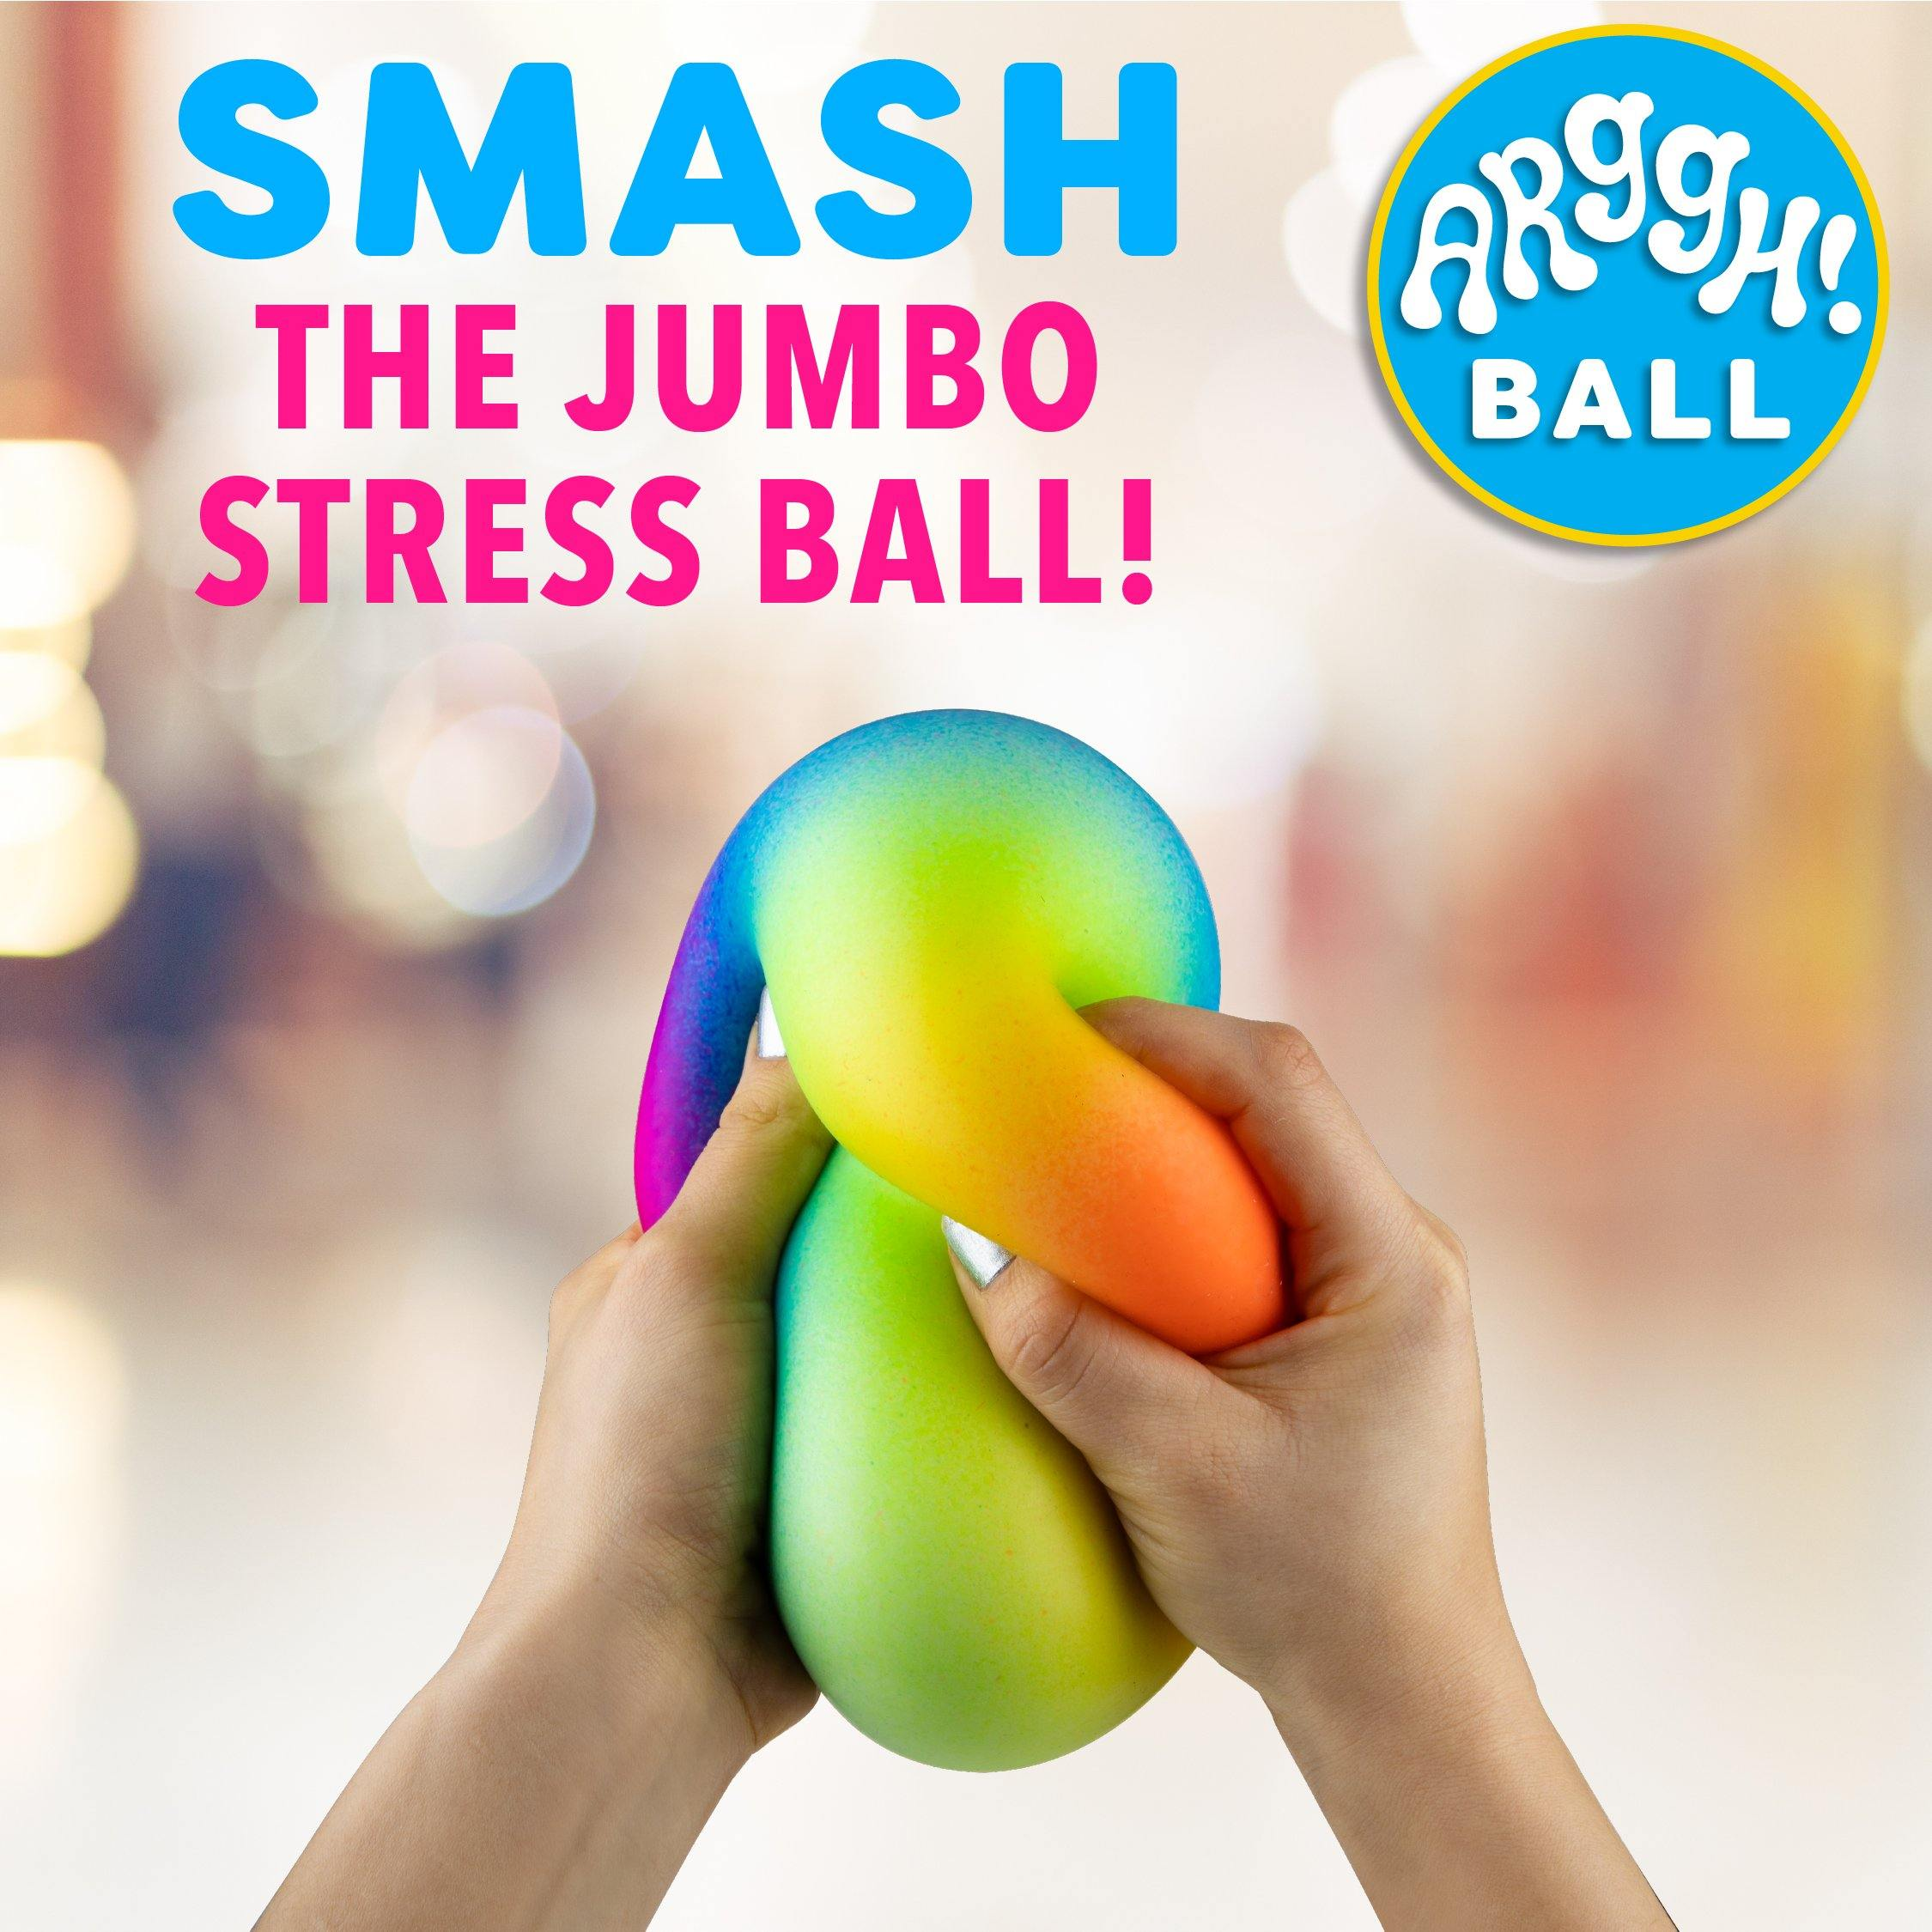 Arggh! Rainbow Stress Ball